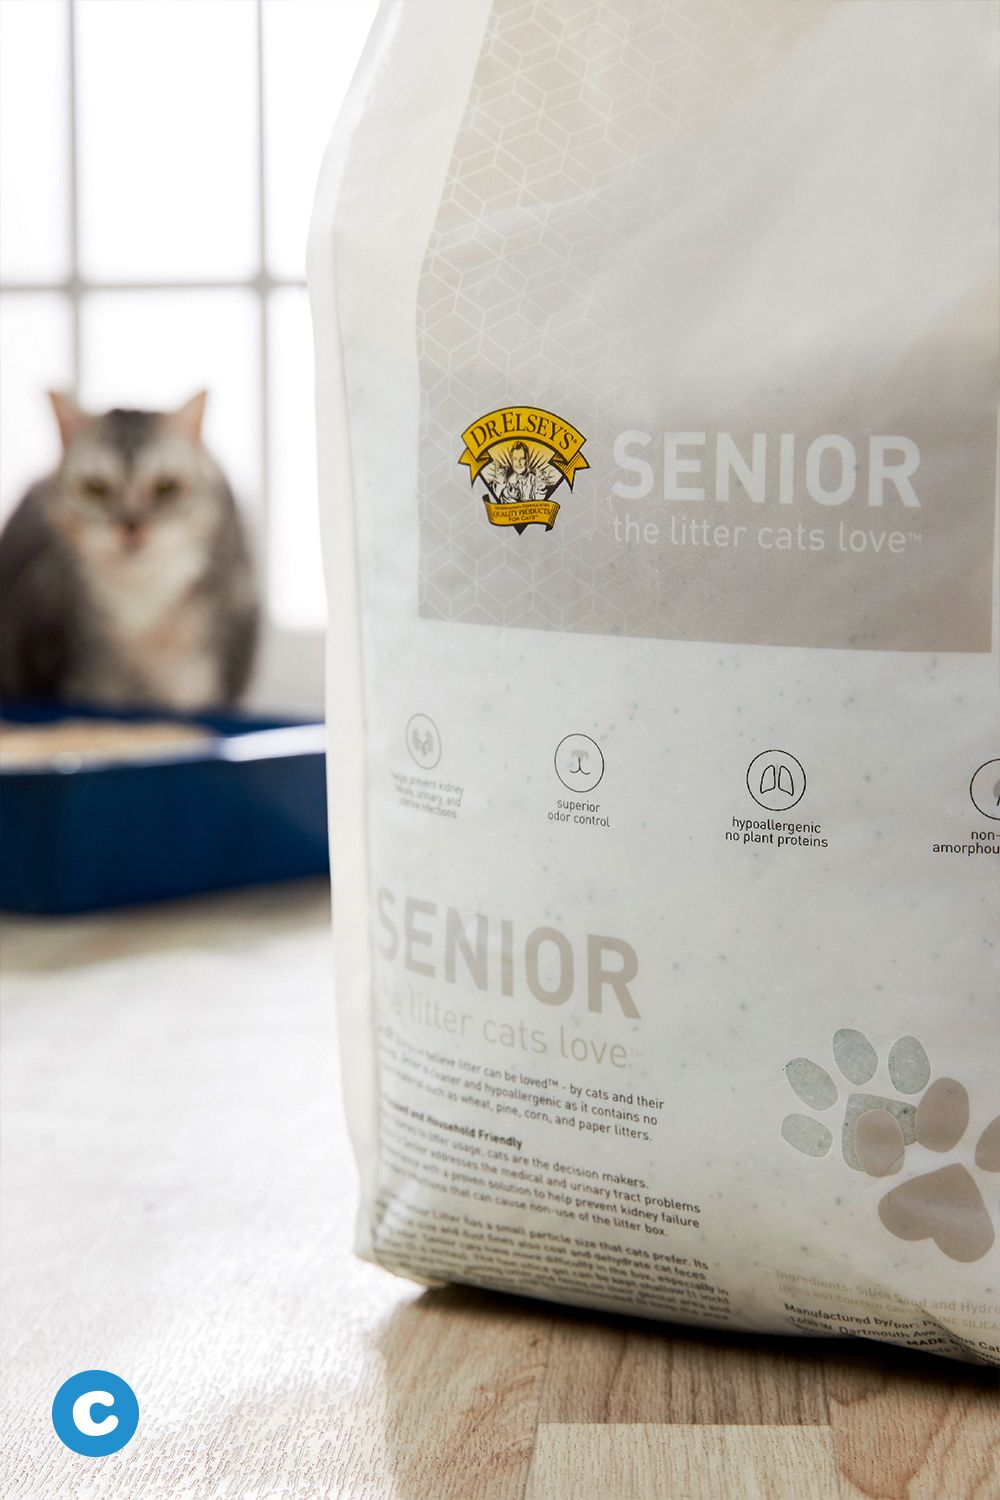 Dr Elsey S Precious Cat Senior Litter Absorbs Urine And Odor On Contact And Traps It Inside The Crystals To Keep A Cat S Genital Area C Litter Cats Pet Parent